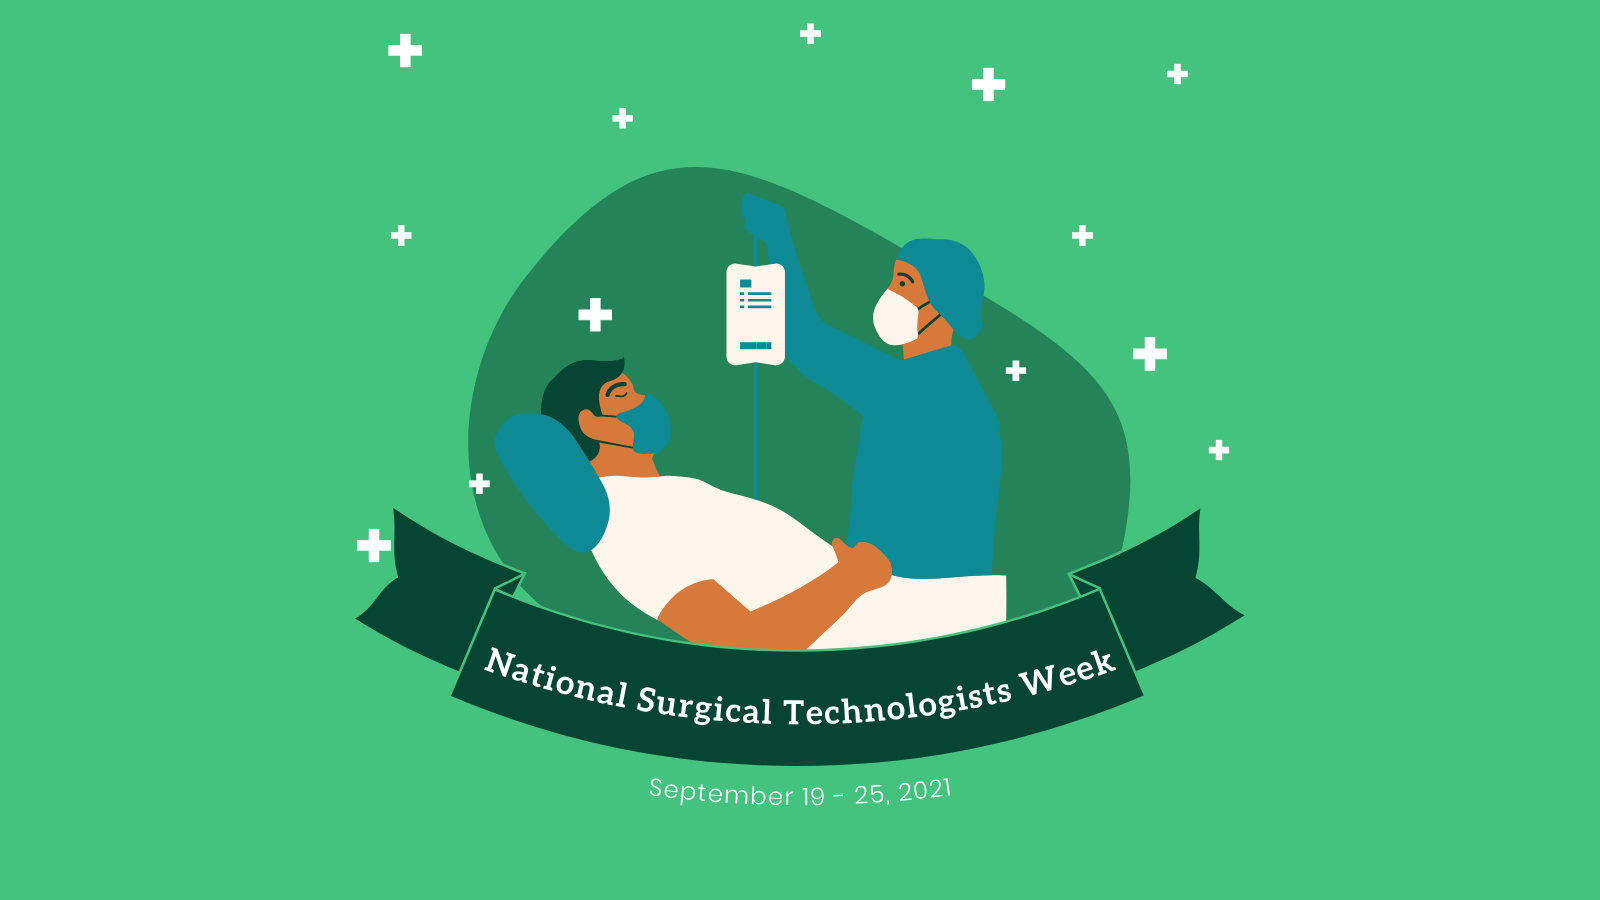 National Surgical Technologists Week